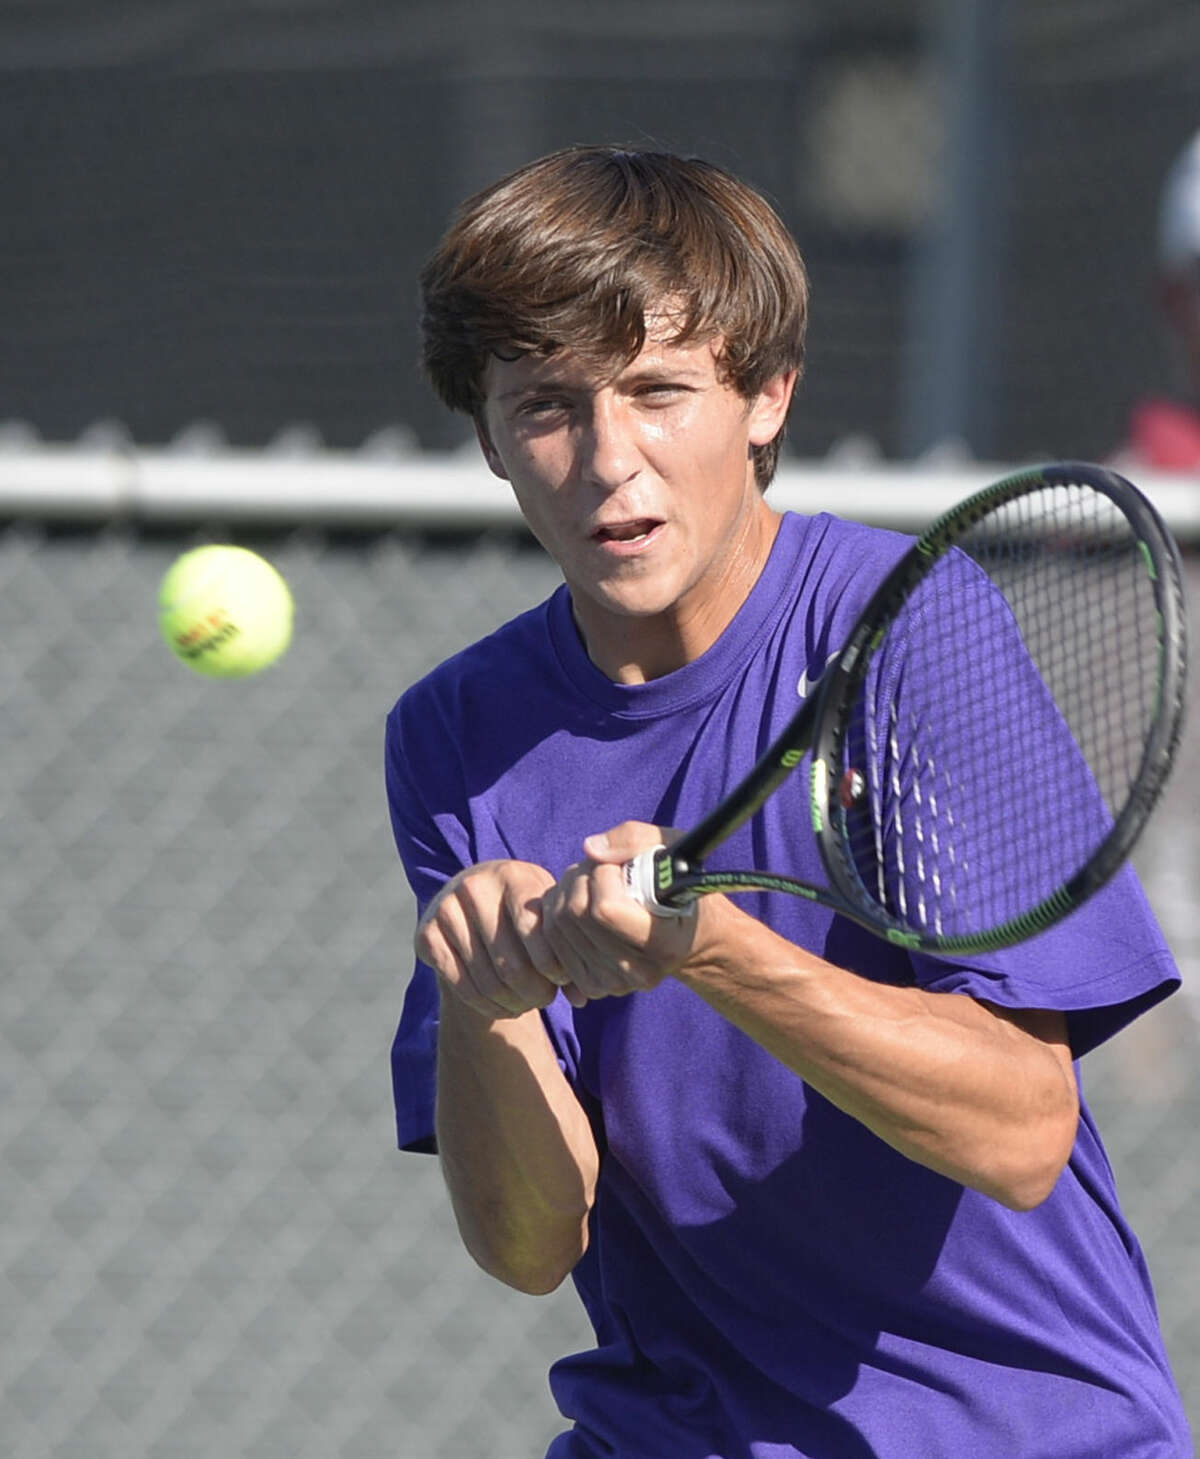 Midland High's Brandt Schneider competes in a doubles match with teammate Hayden Boldrick (not pictured) against Lee High on Tuesday, Oct. 6, 2015, at the Raquet Club. James Durbin/Reporter-Telegram